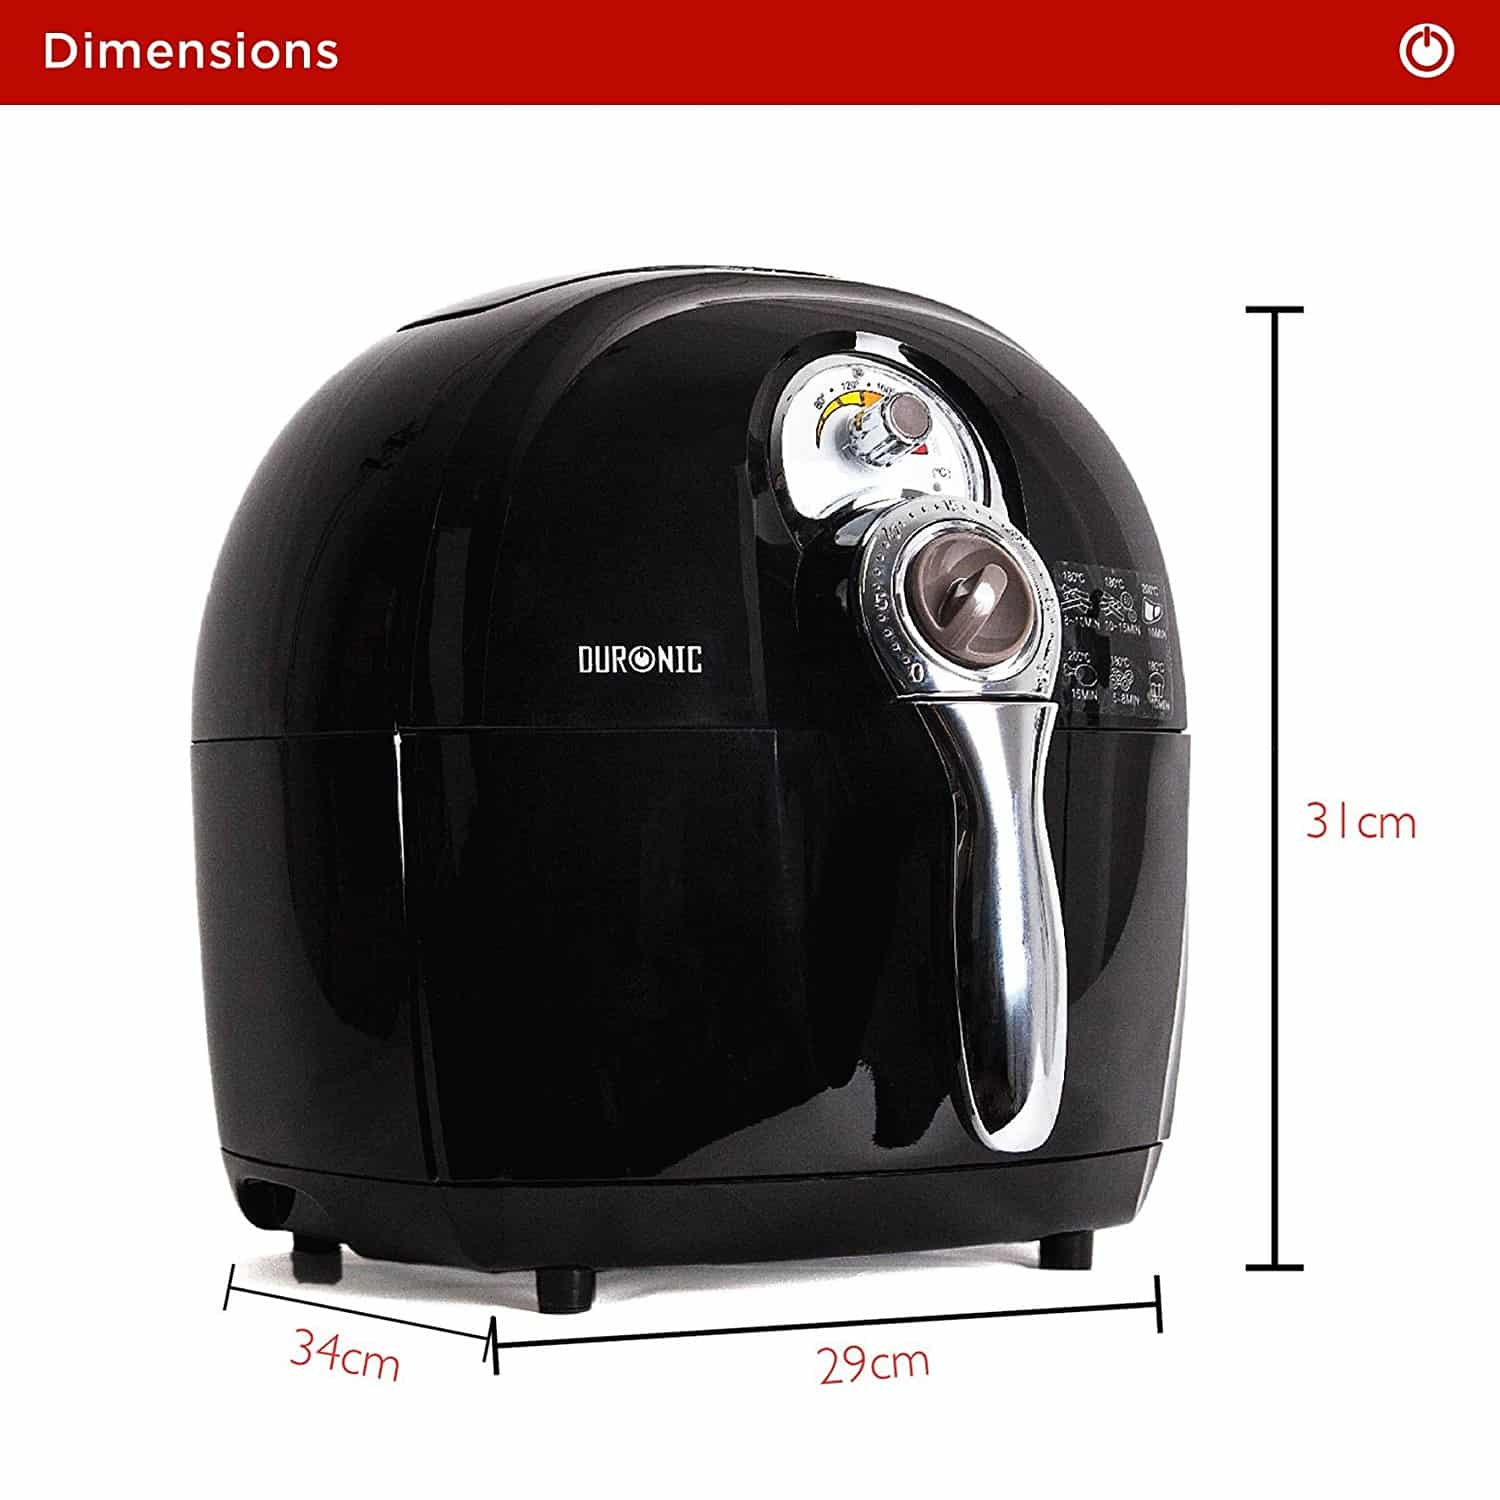 The duronic af1 air fryer dimensions